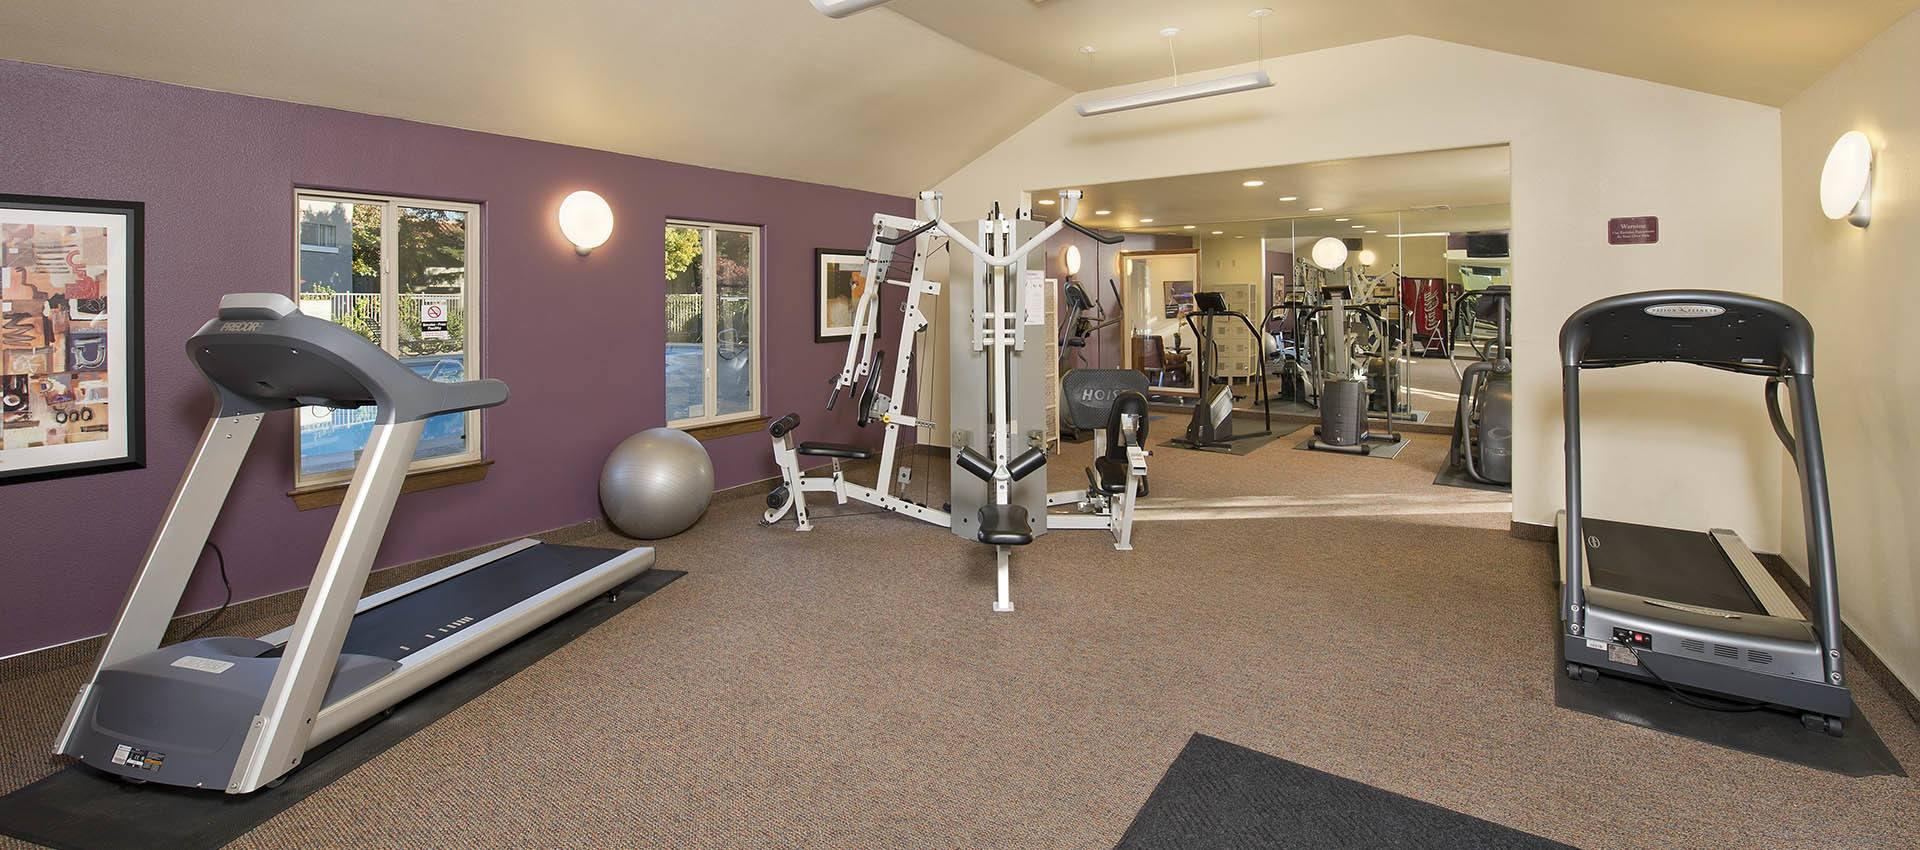 Fitness Center at La Valencia Apartment Homes in Campbell